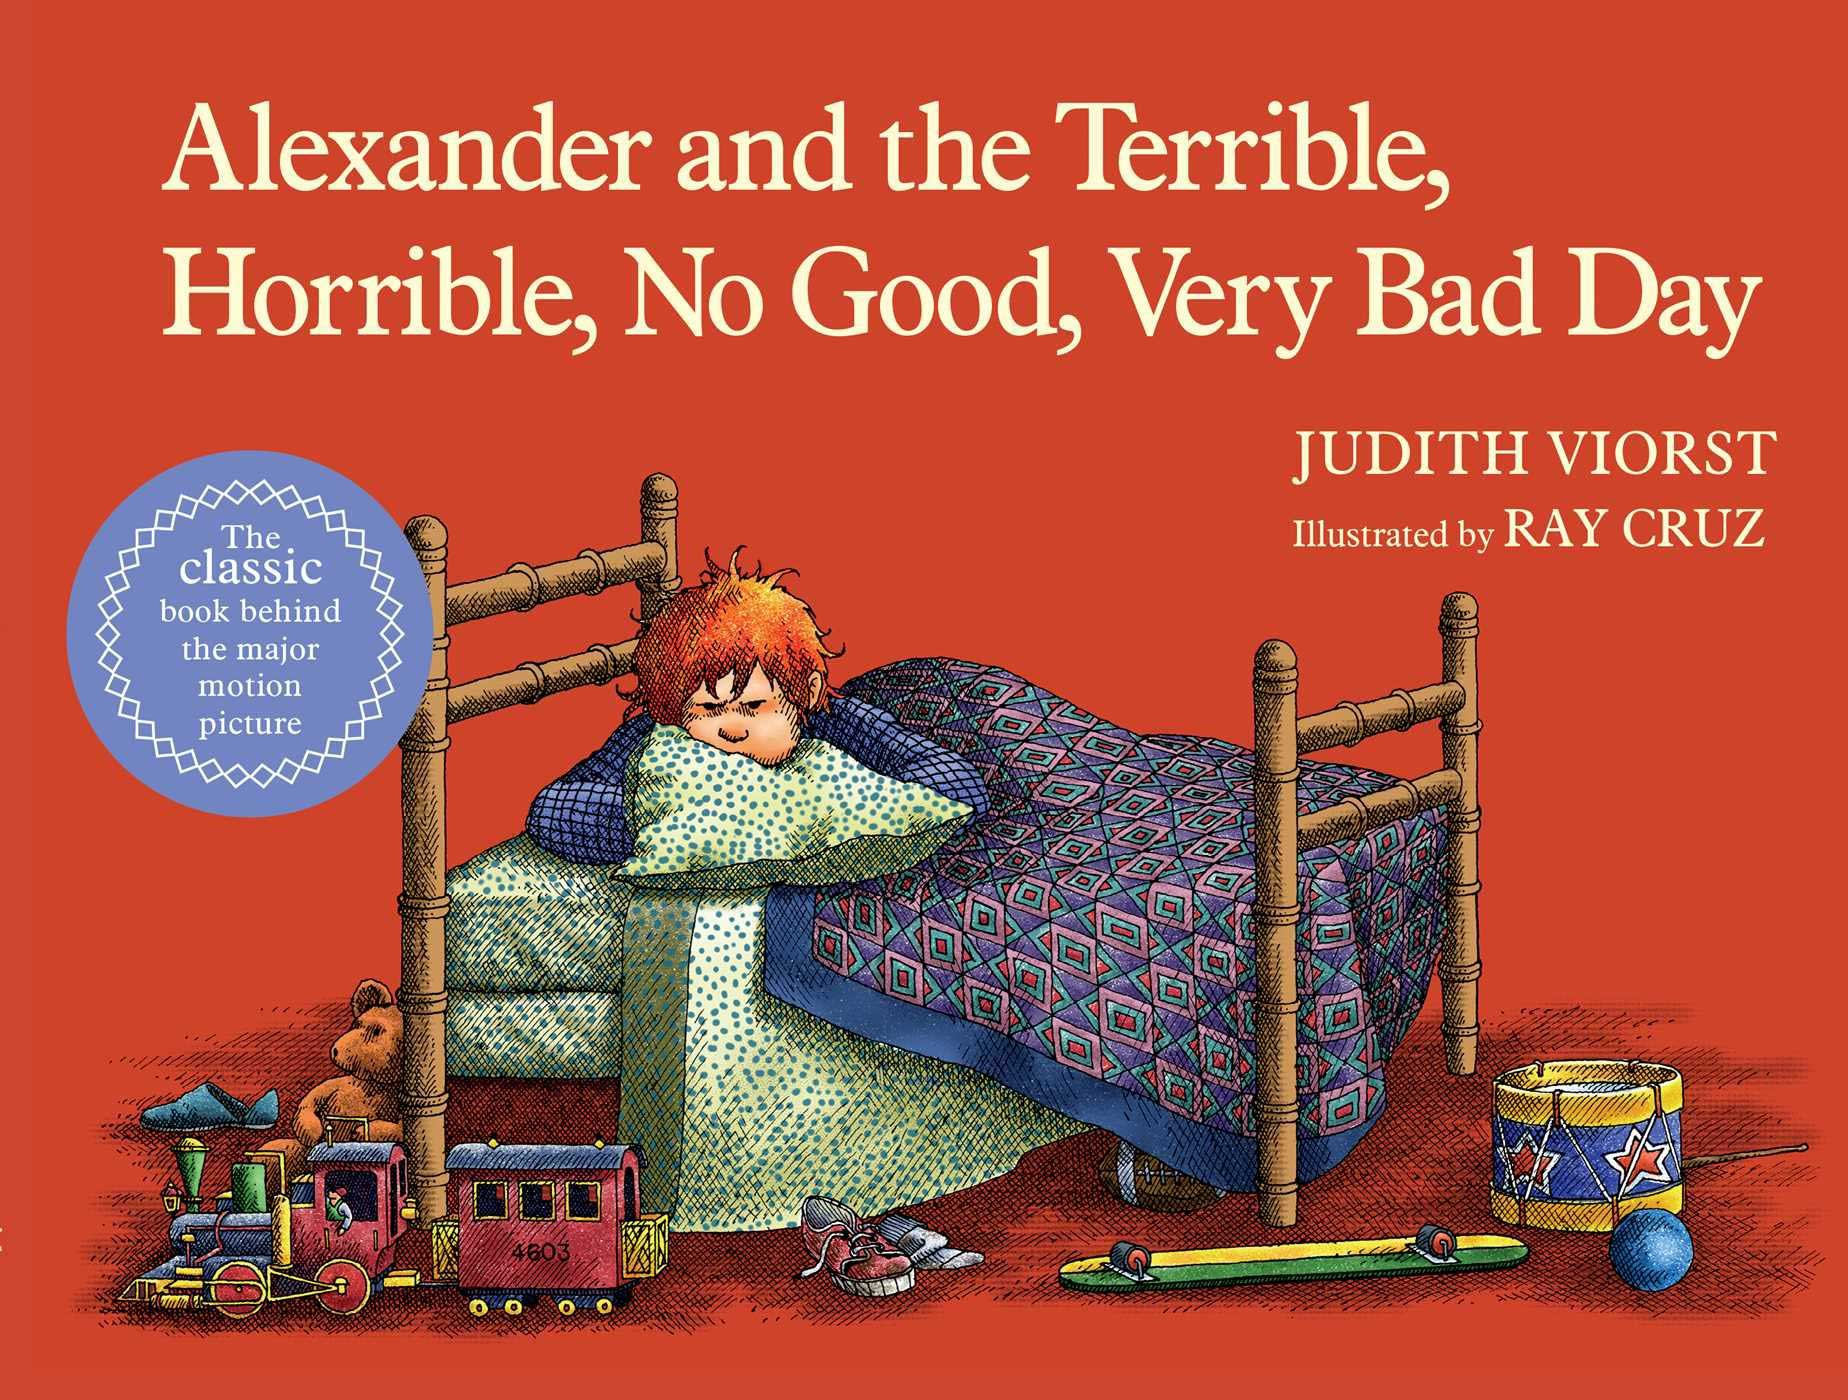 Alexander and the Terrible, Horrible, No Good, Very Bad Day, by Judith Viorst, illustrations by Ray Cruz.                                                                                                                            Alexander's nonstop misfortunes pile up comically over the course of one outrageous day.                                                                                                                            Buy now: Alexander and the Terrible, Horrible, No Good, Very Bad Day